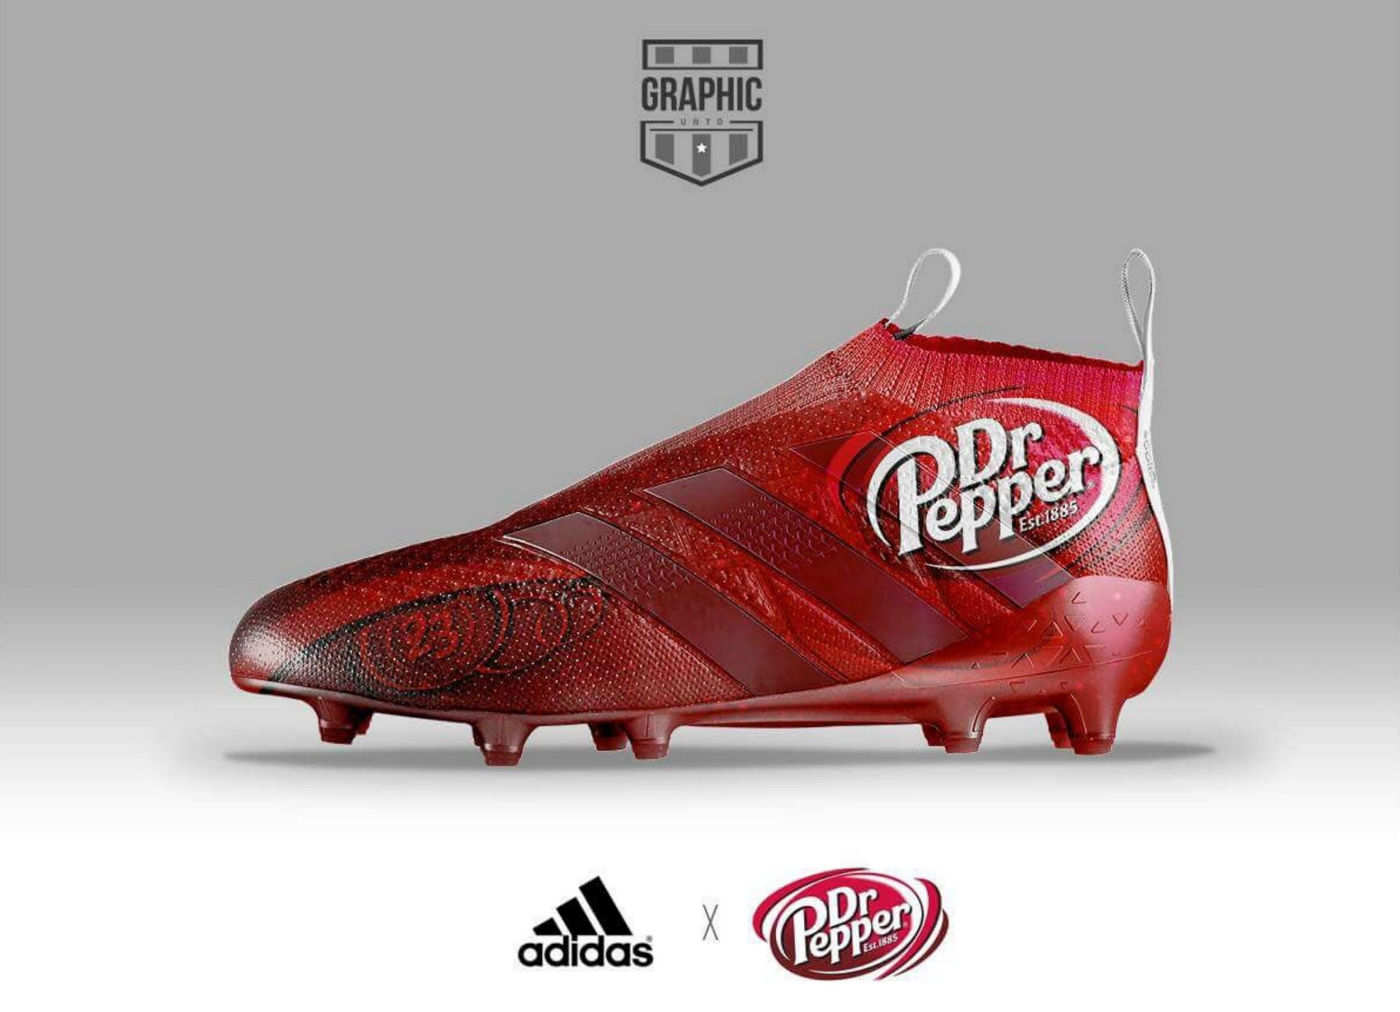 what if soccer boots met brands concept designs soccer